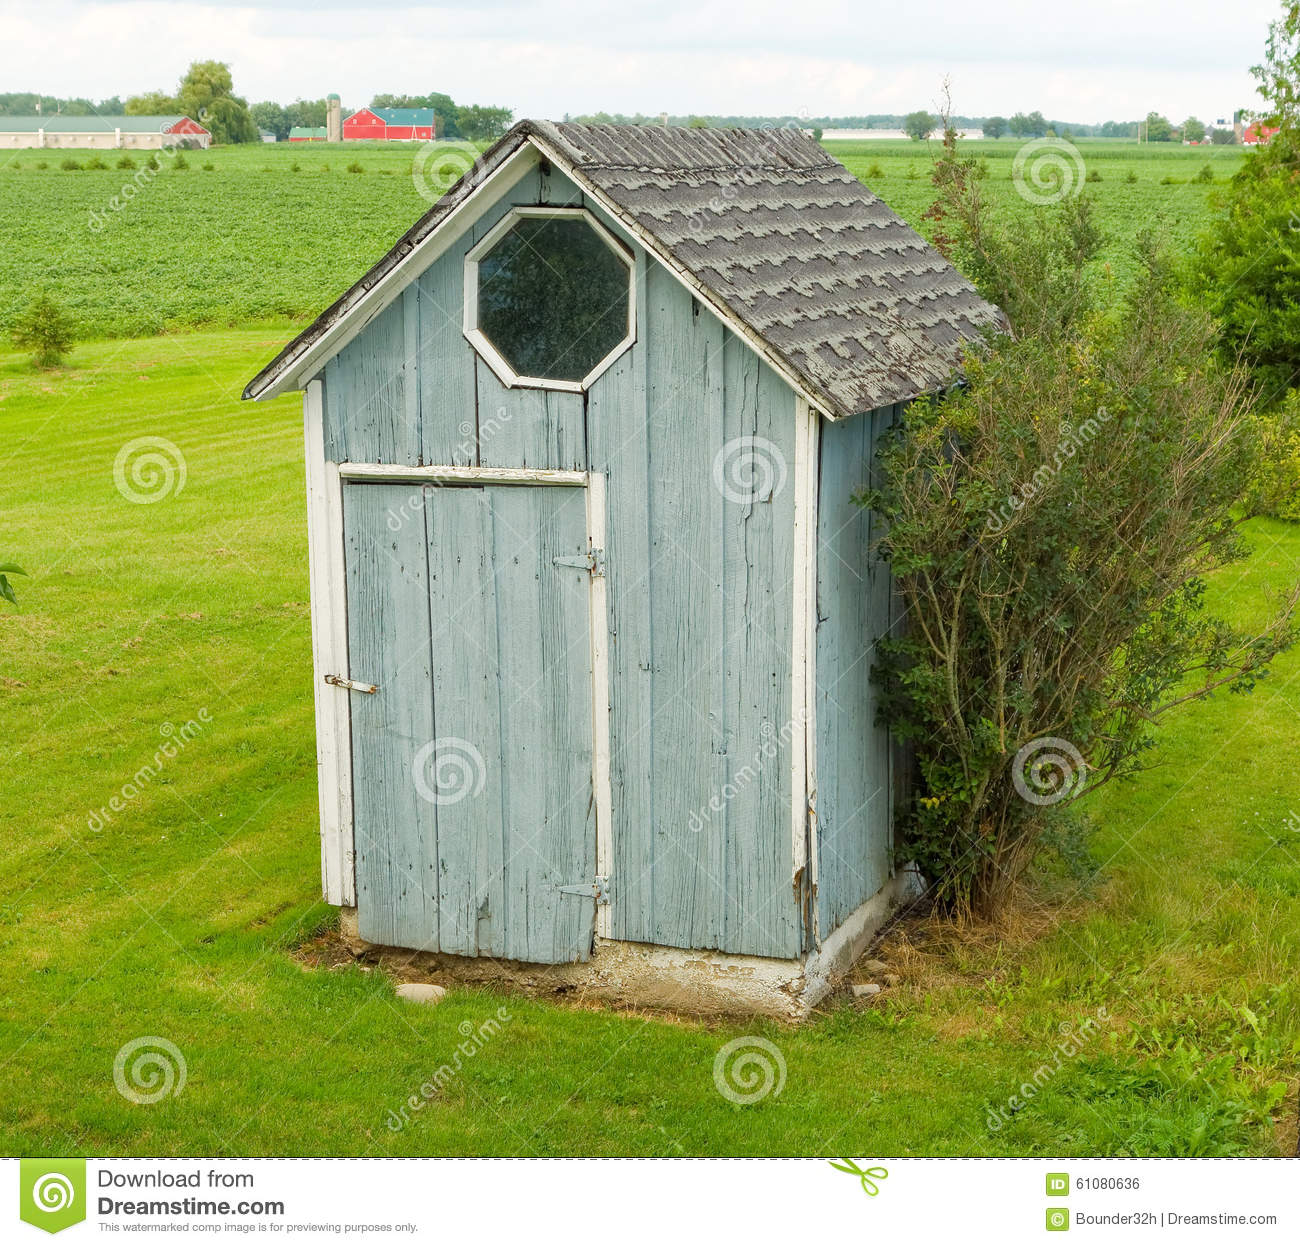 A rustic garden shed in the countryside stock photo for Small wooden structures